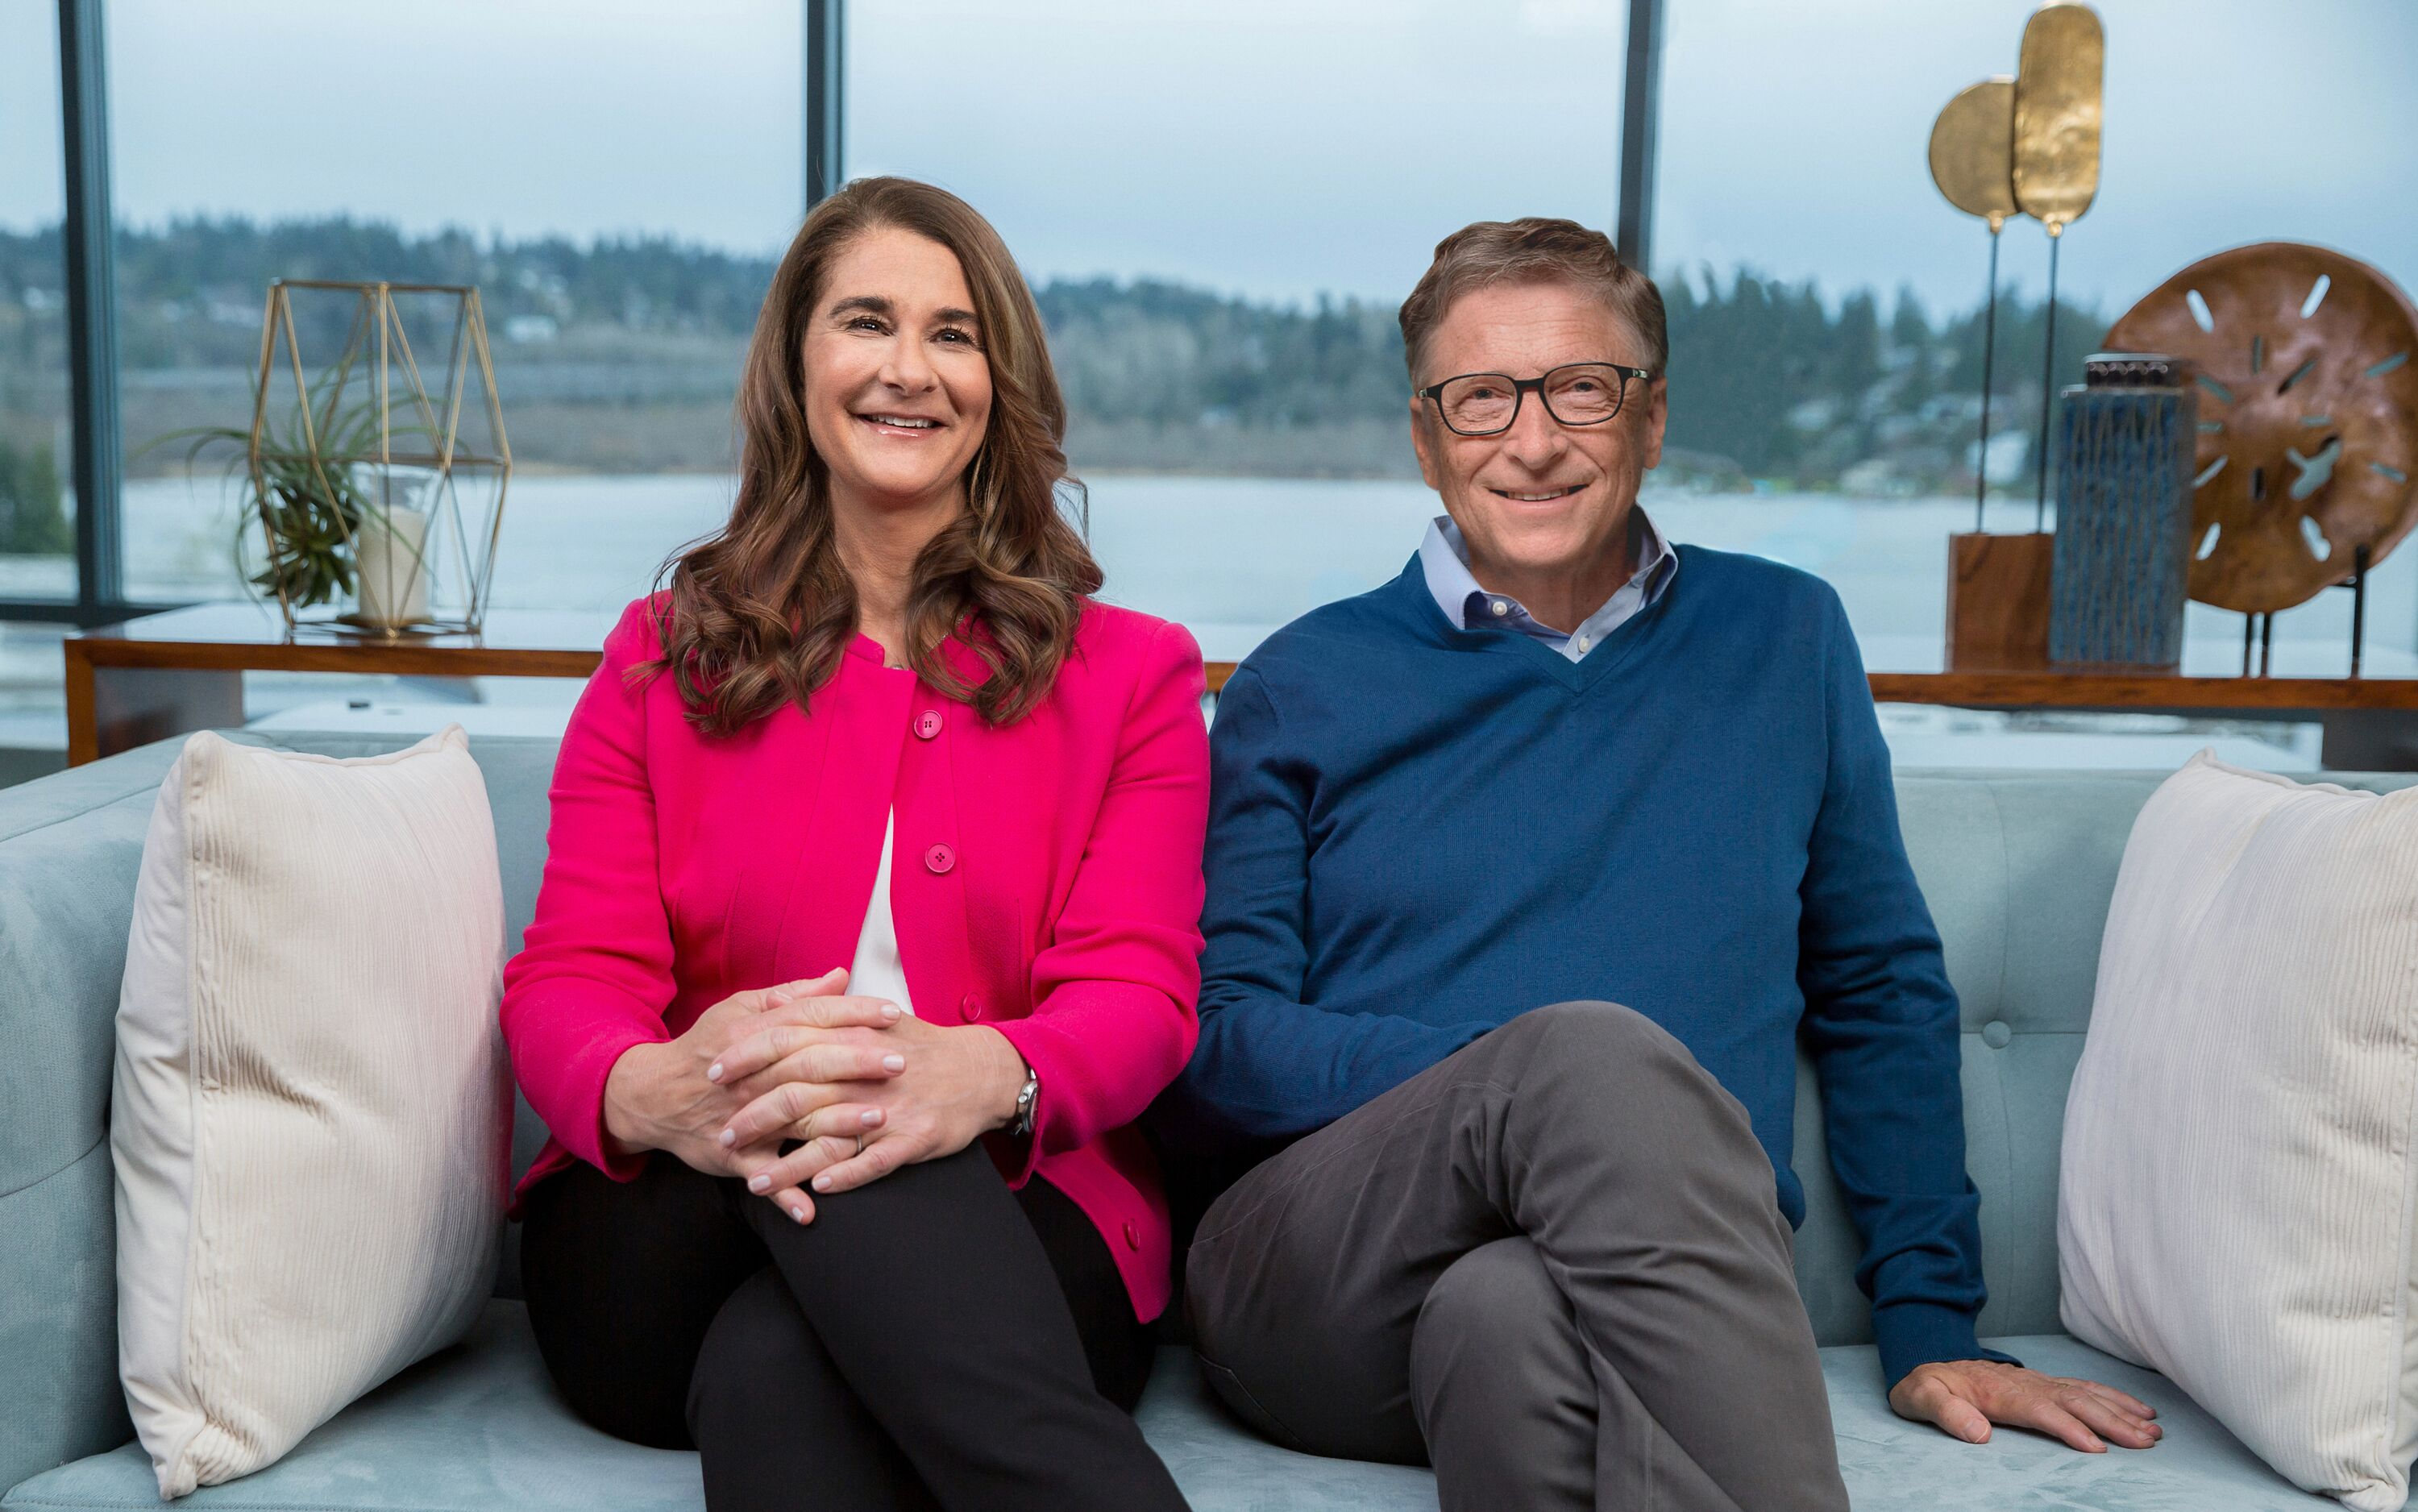 Bill and Melinda Gates share 2019 Annual Letter